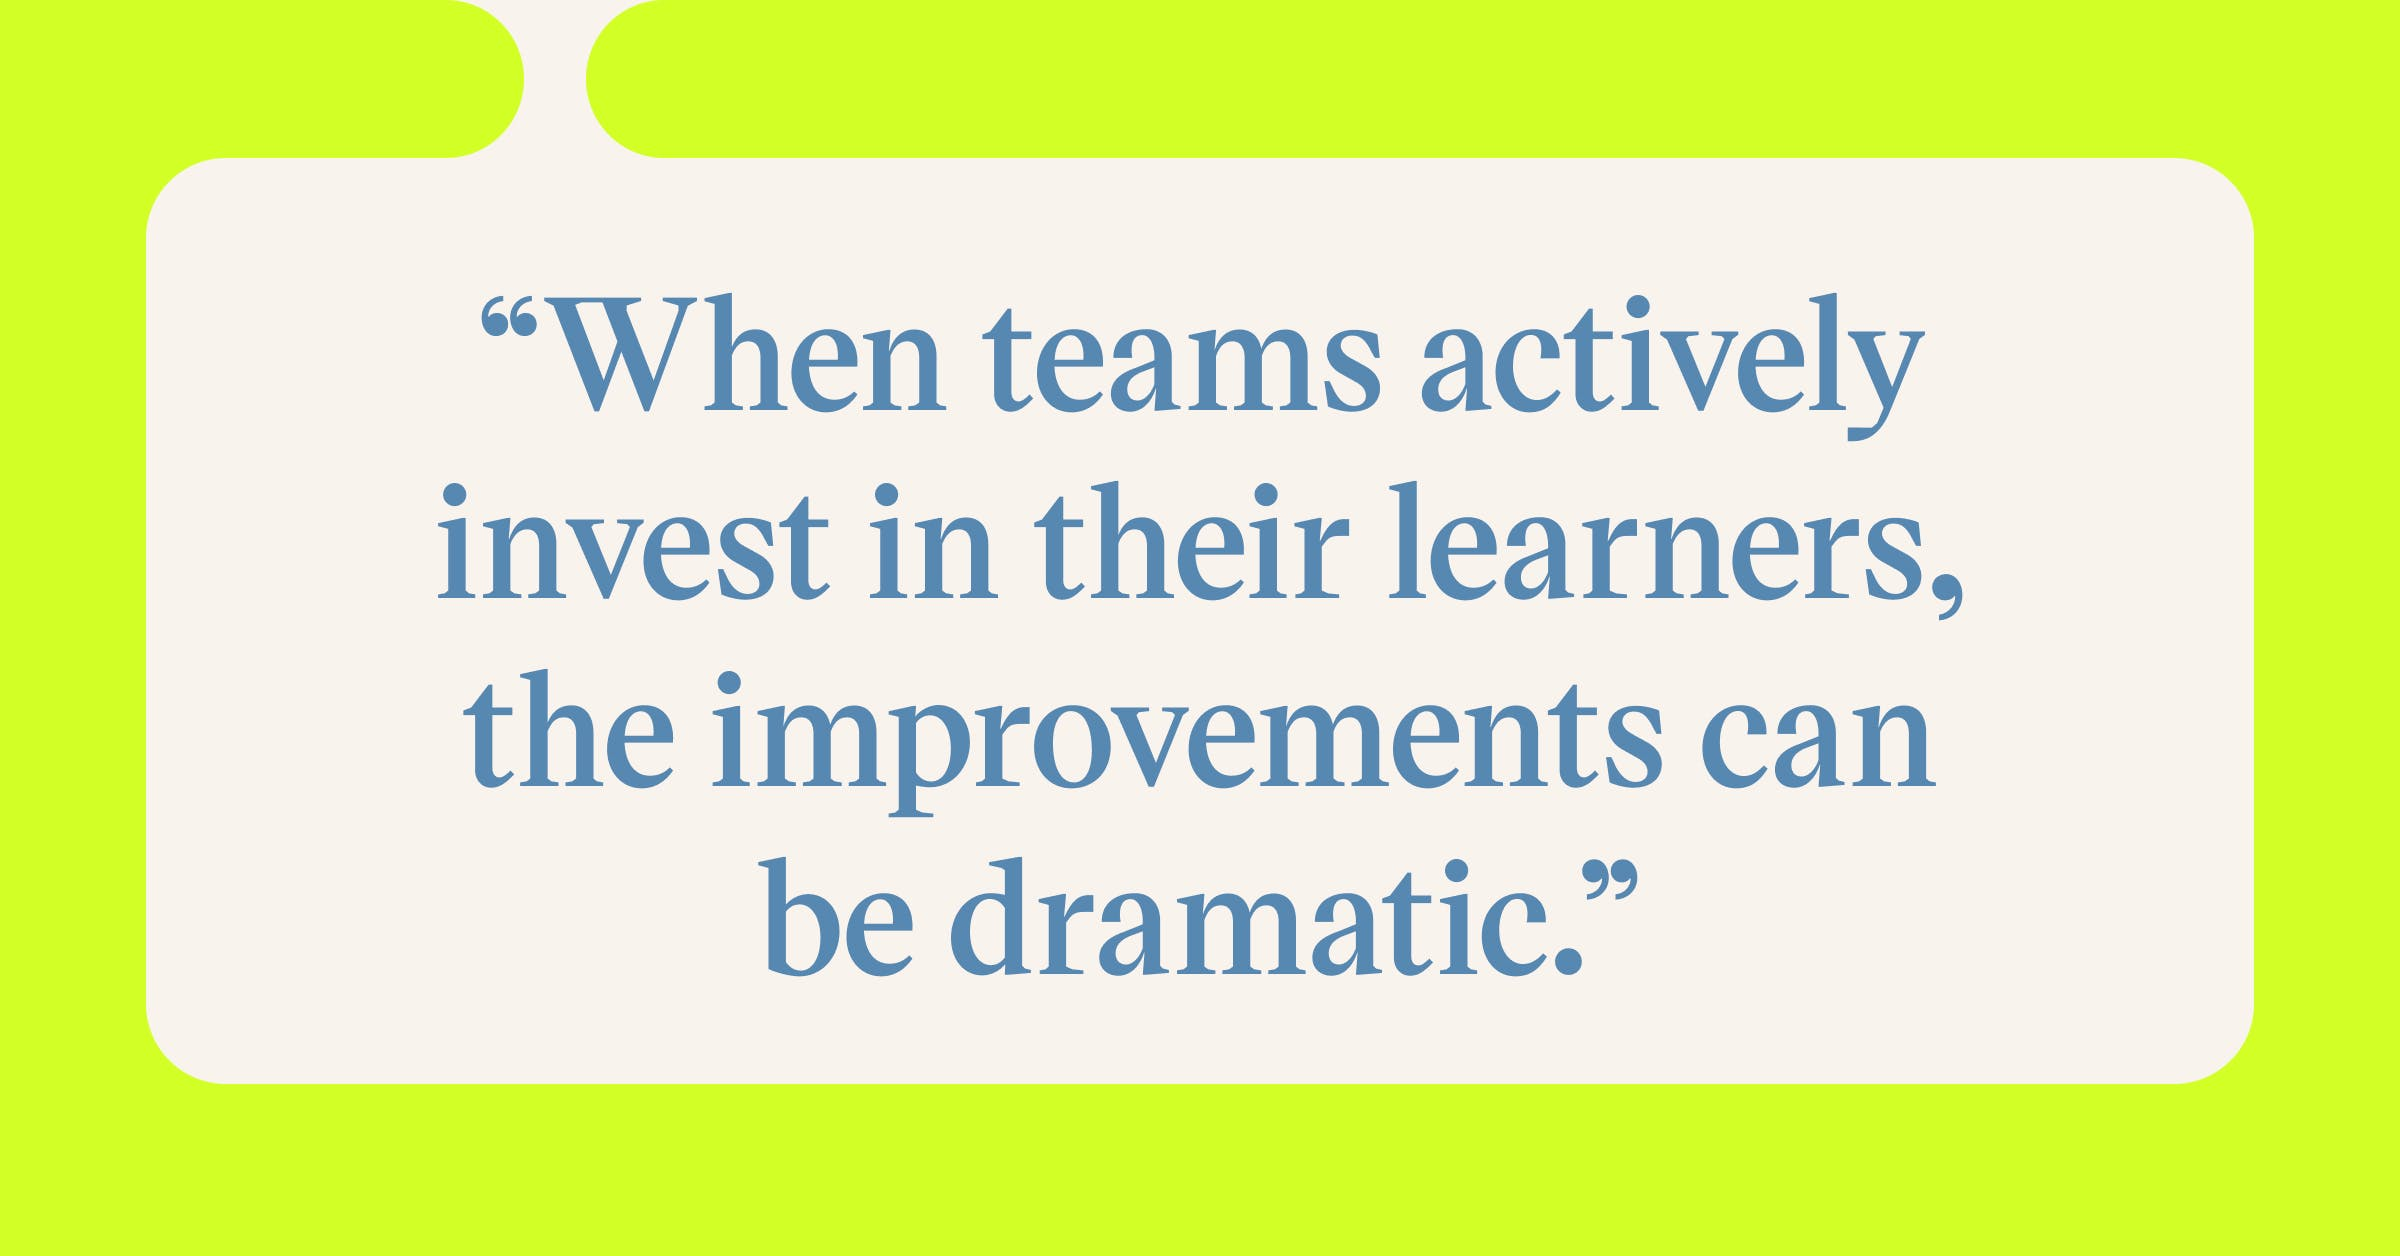 Pull quote with the text: When teams actively invest in their learners, the improvements can be dramatic